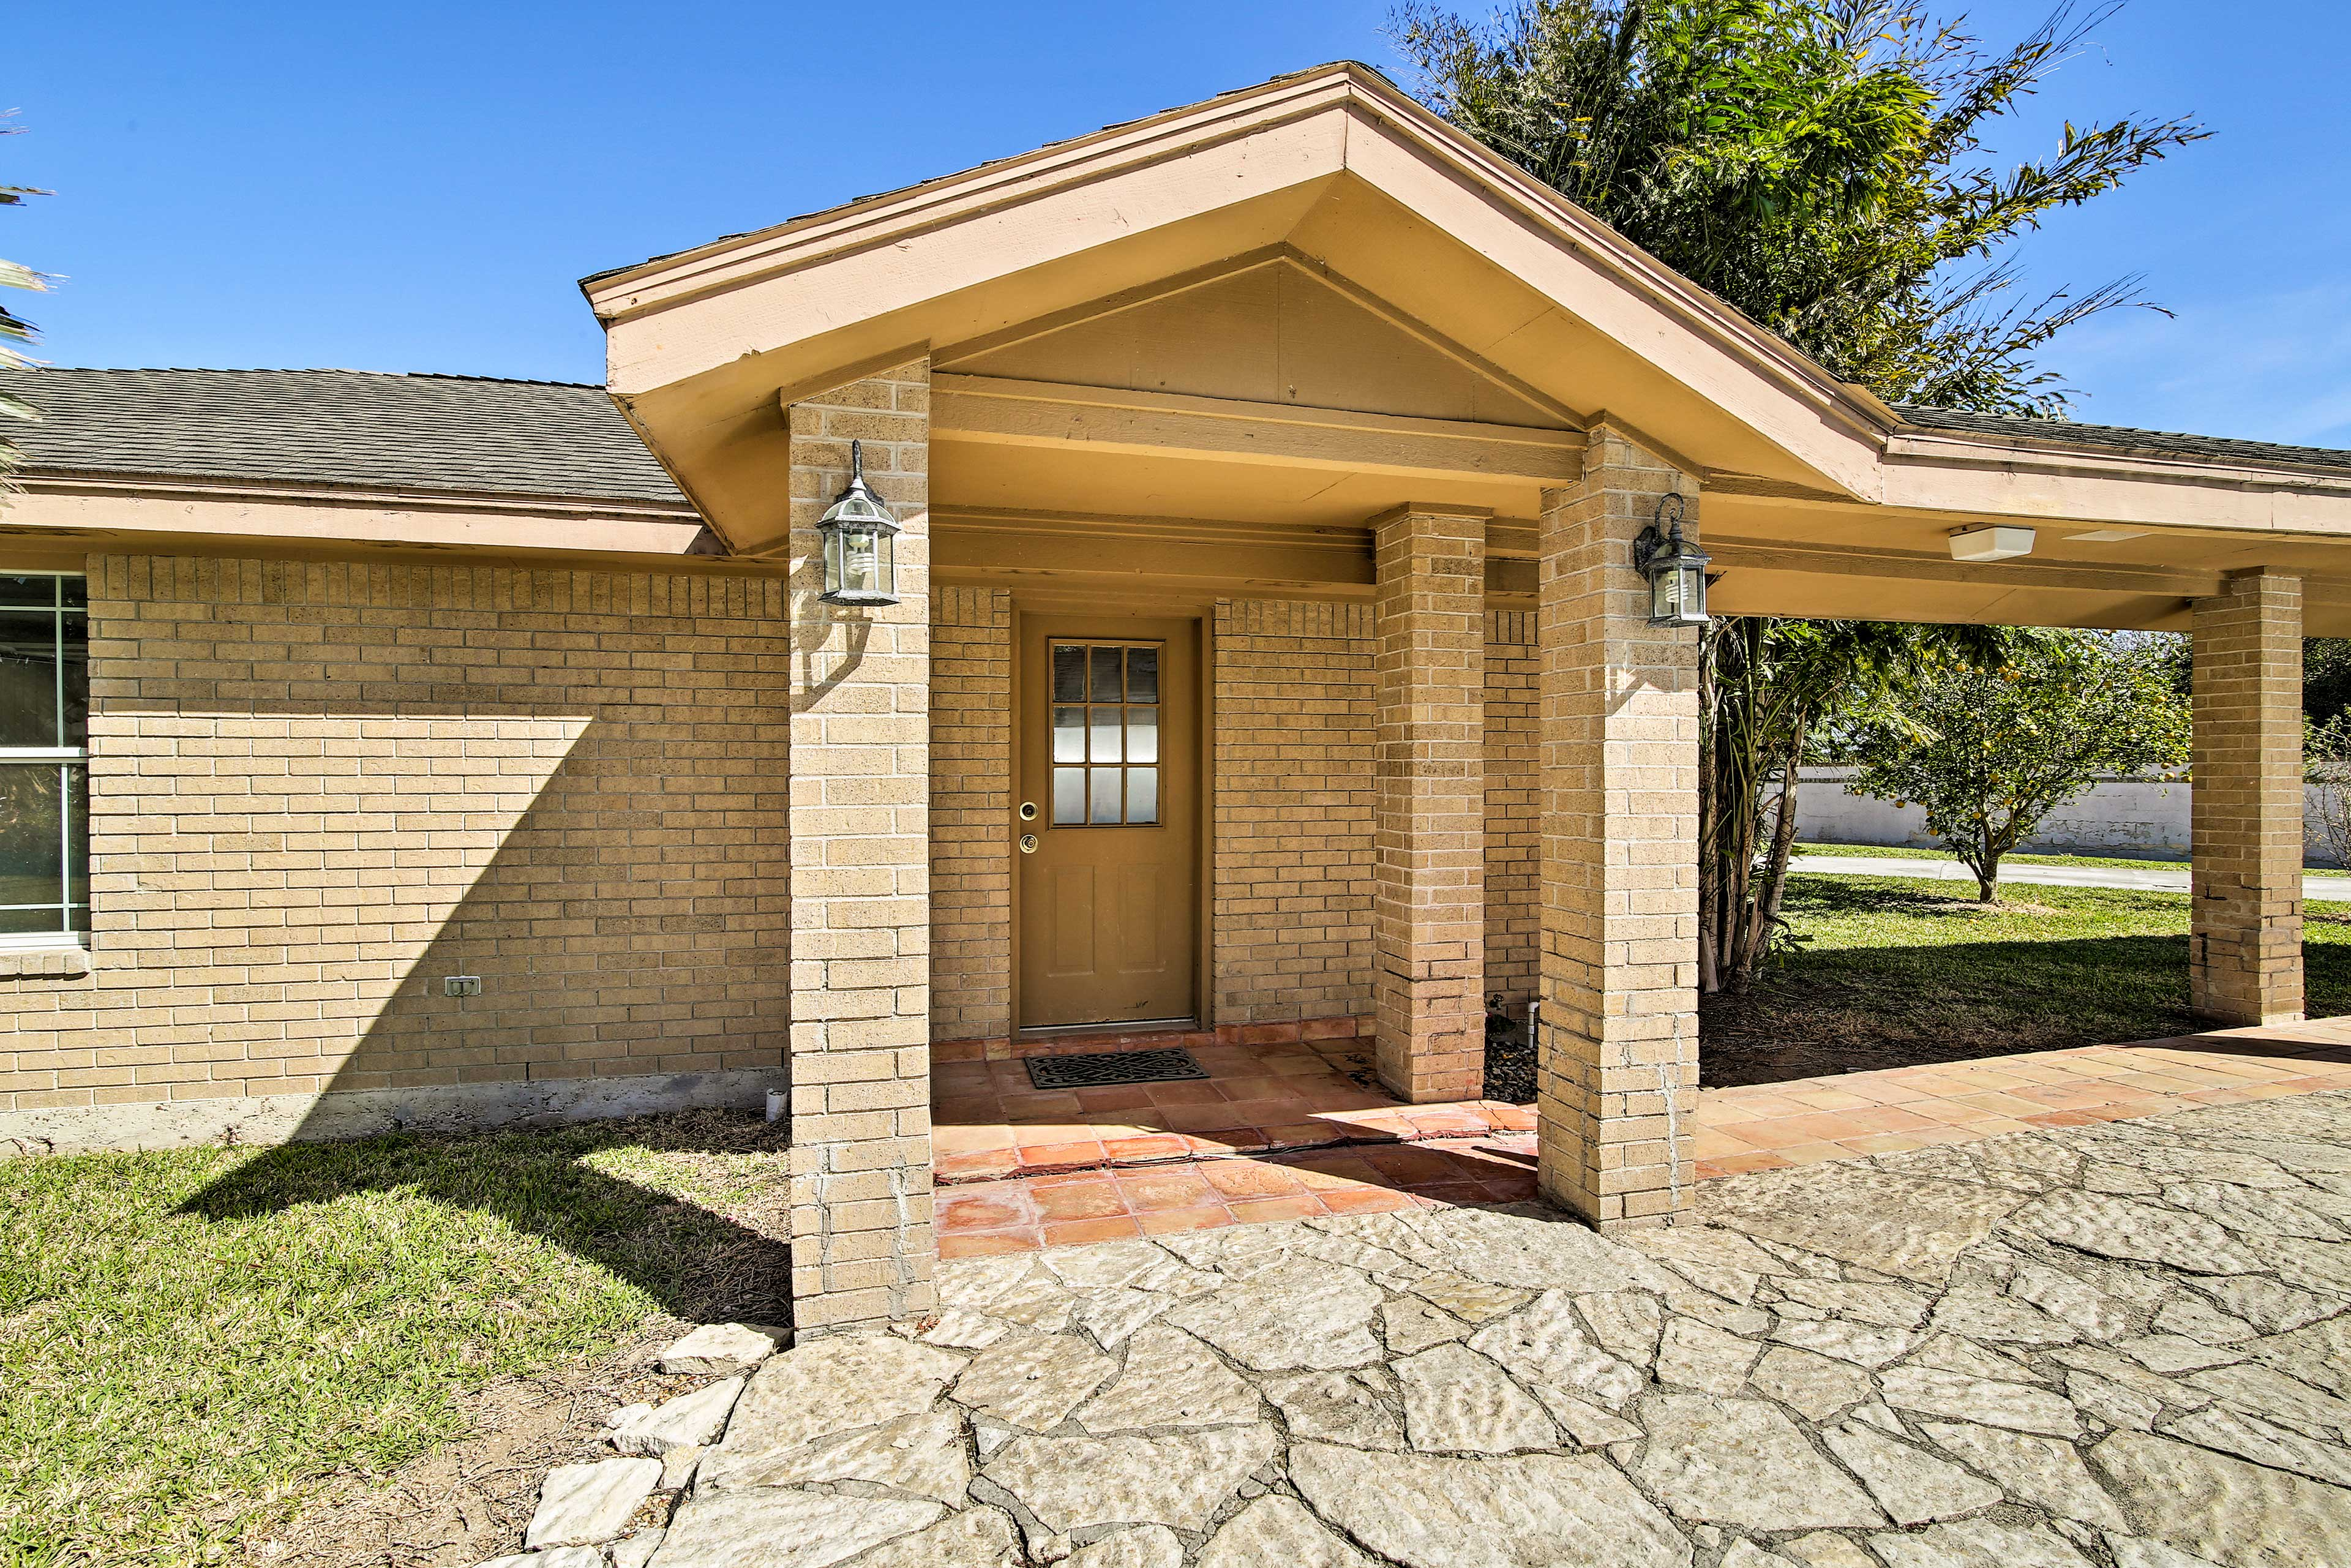 A memorable stay awaits you at this Harlingen home!